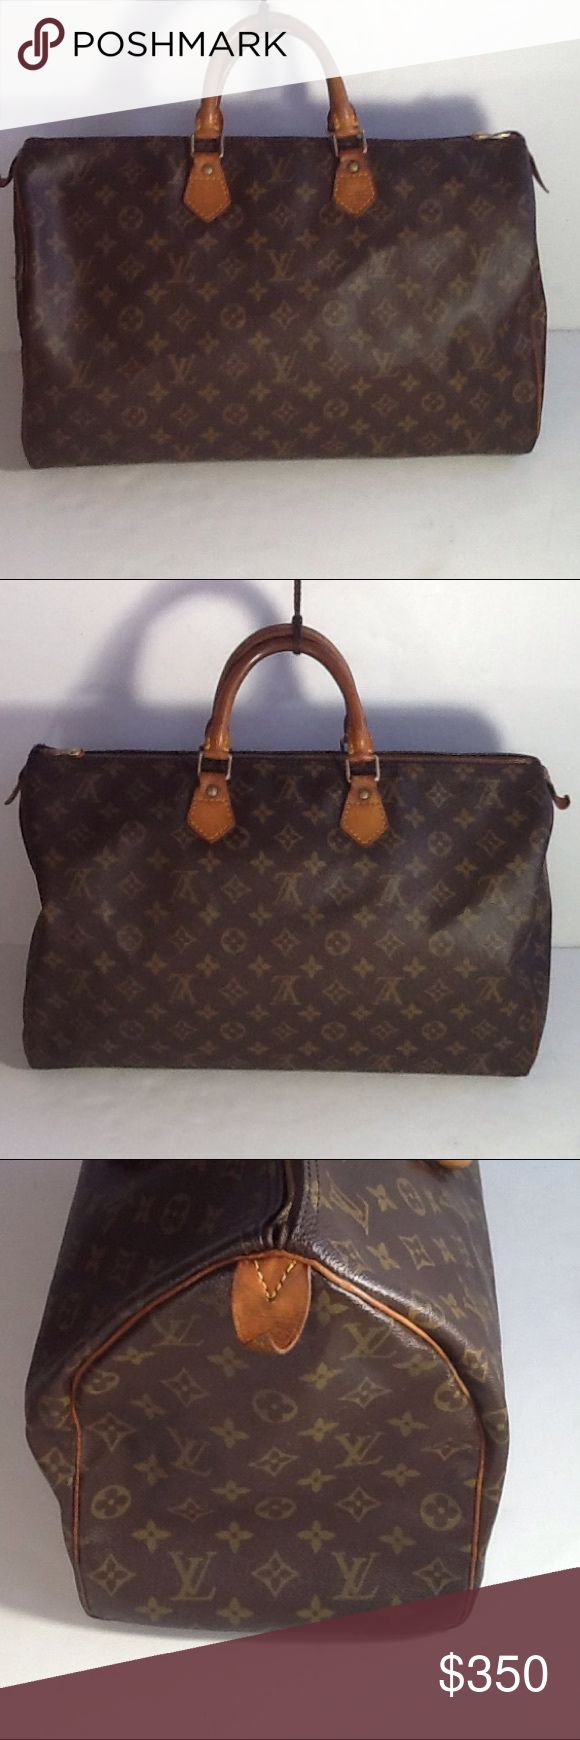 Authentic Louis Vuitton Speedy 40 Monogram Satchel The leather and strap showed signs of used. The canvas and inside linen are good. The bG was made in France with a date code SP 0962. The zipper pull leather piece got ripped. The bad had no lock and key. Louis Vuitton Bags Satchels